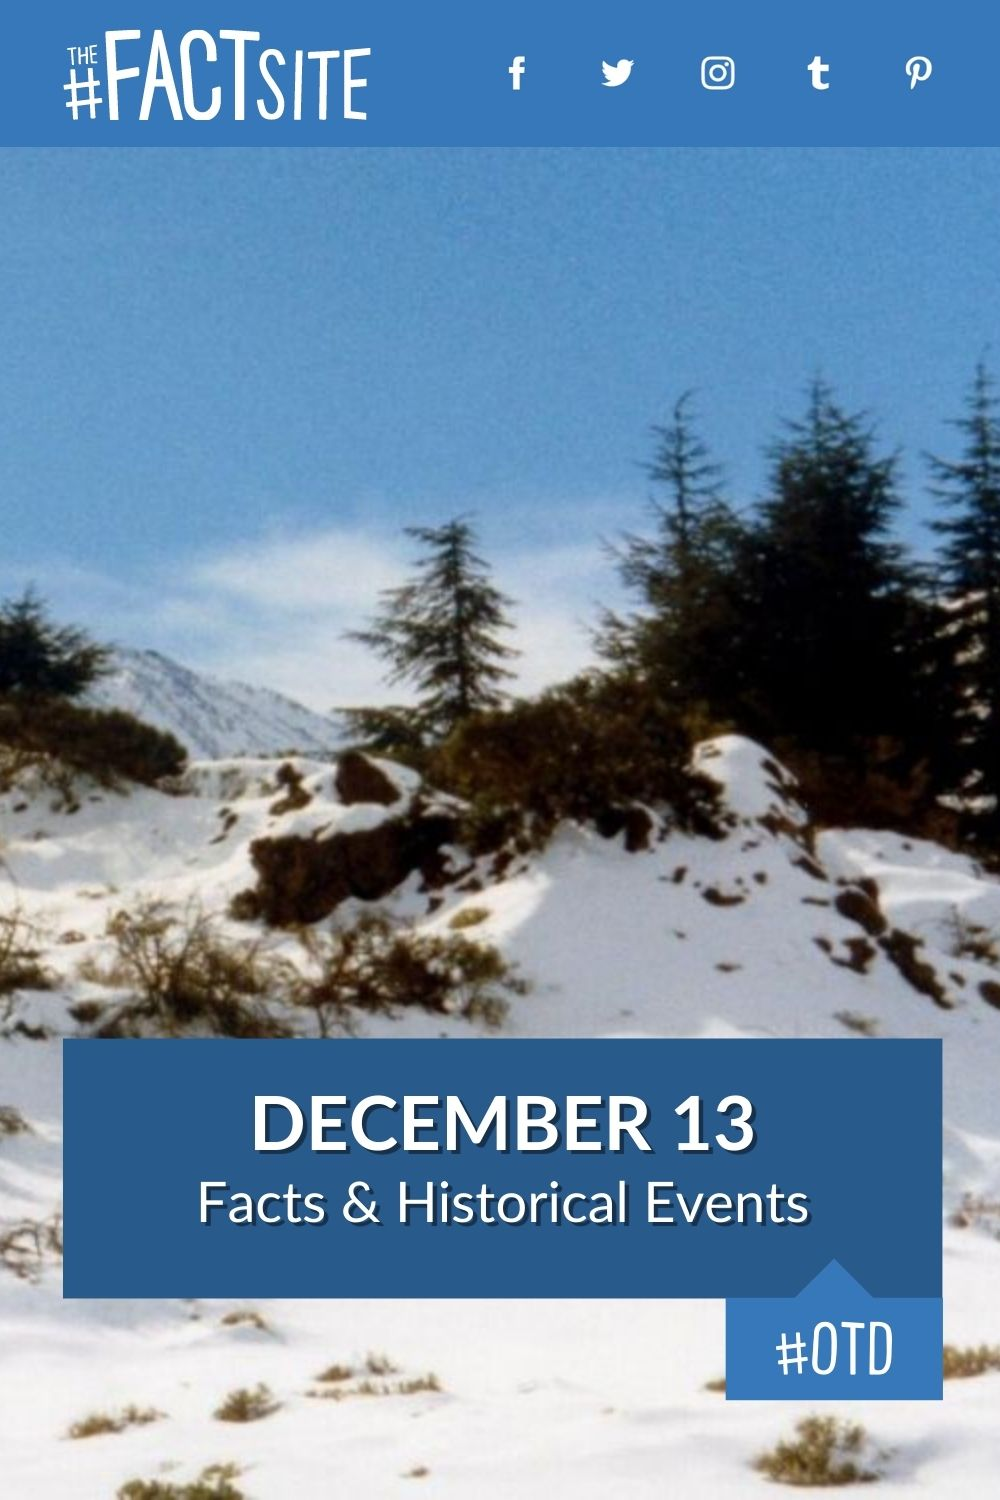 Facts & Historic Events That Happened on December 13